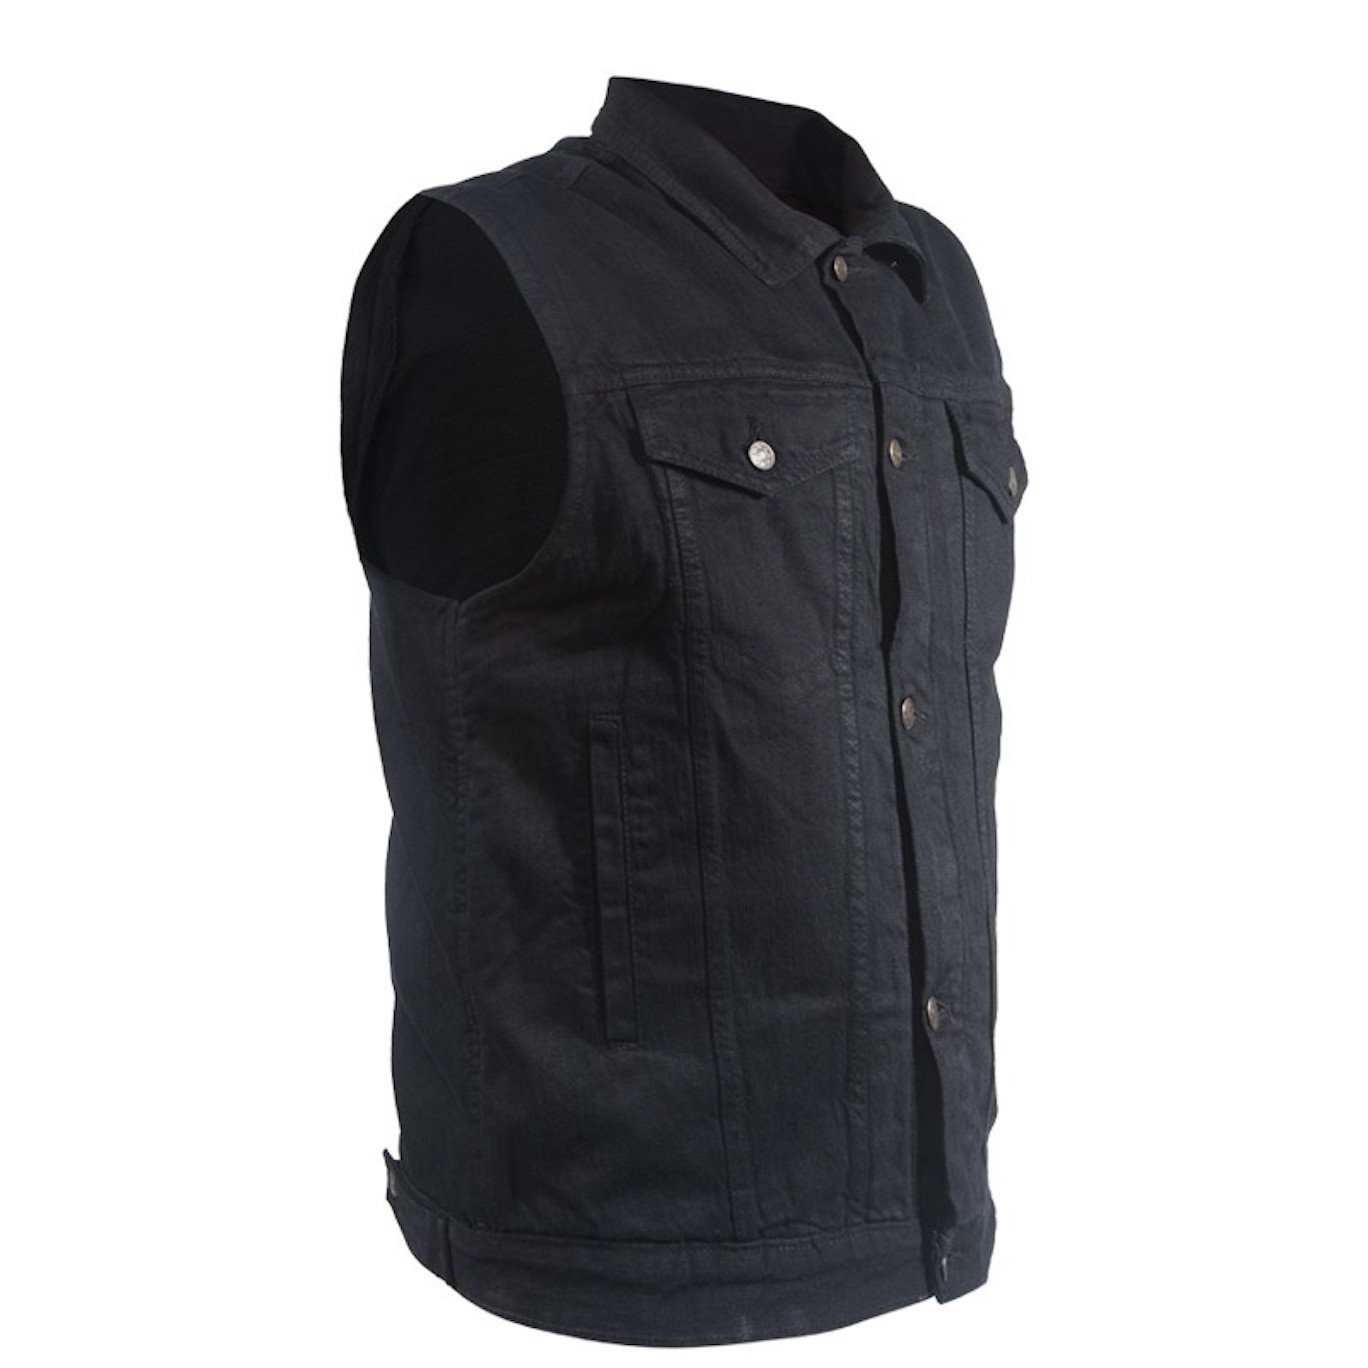 Ultimate Leather Apparel Mens Black Denim Motorcycle Vest Fold Down Collar with Button Snap Front